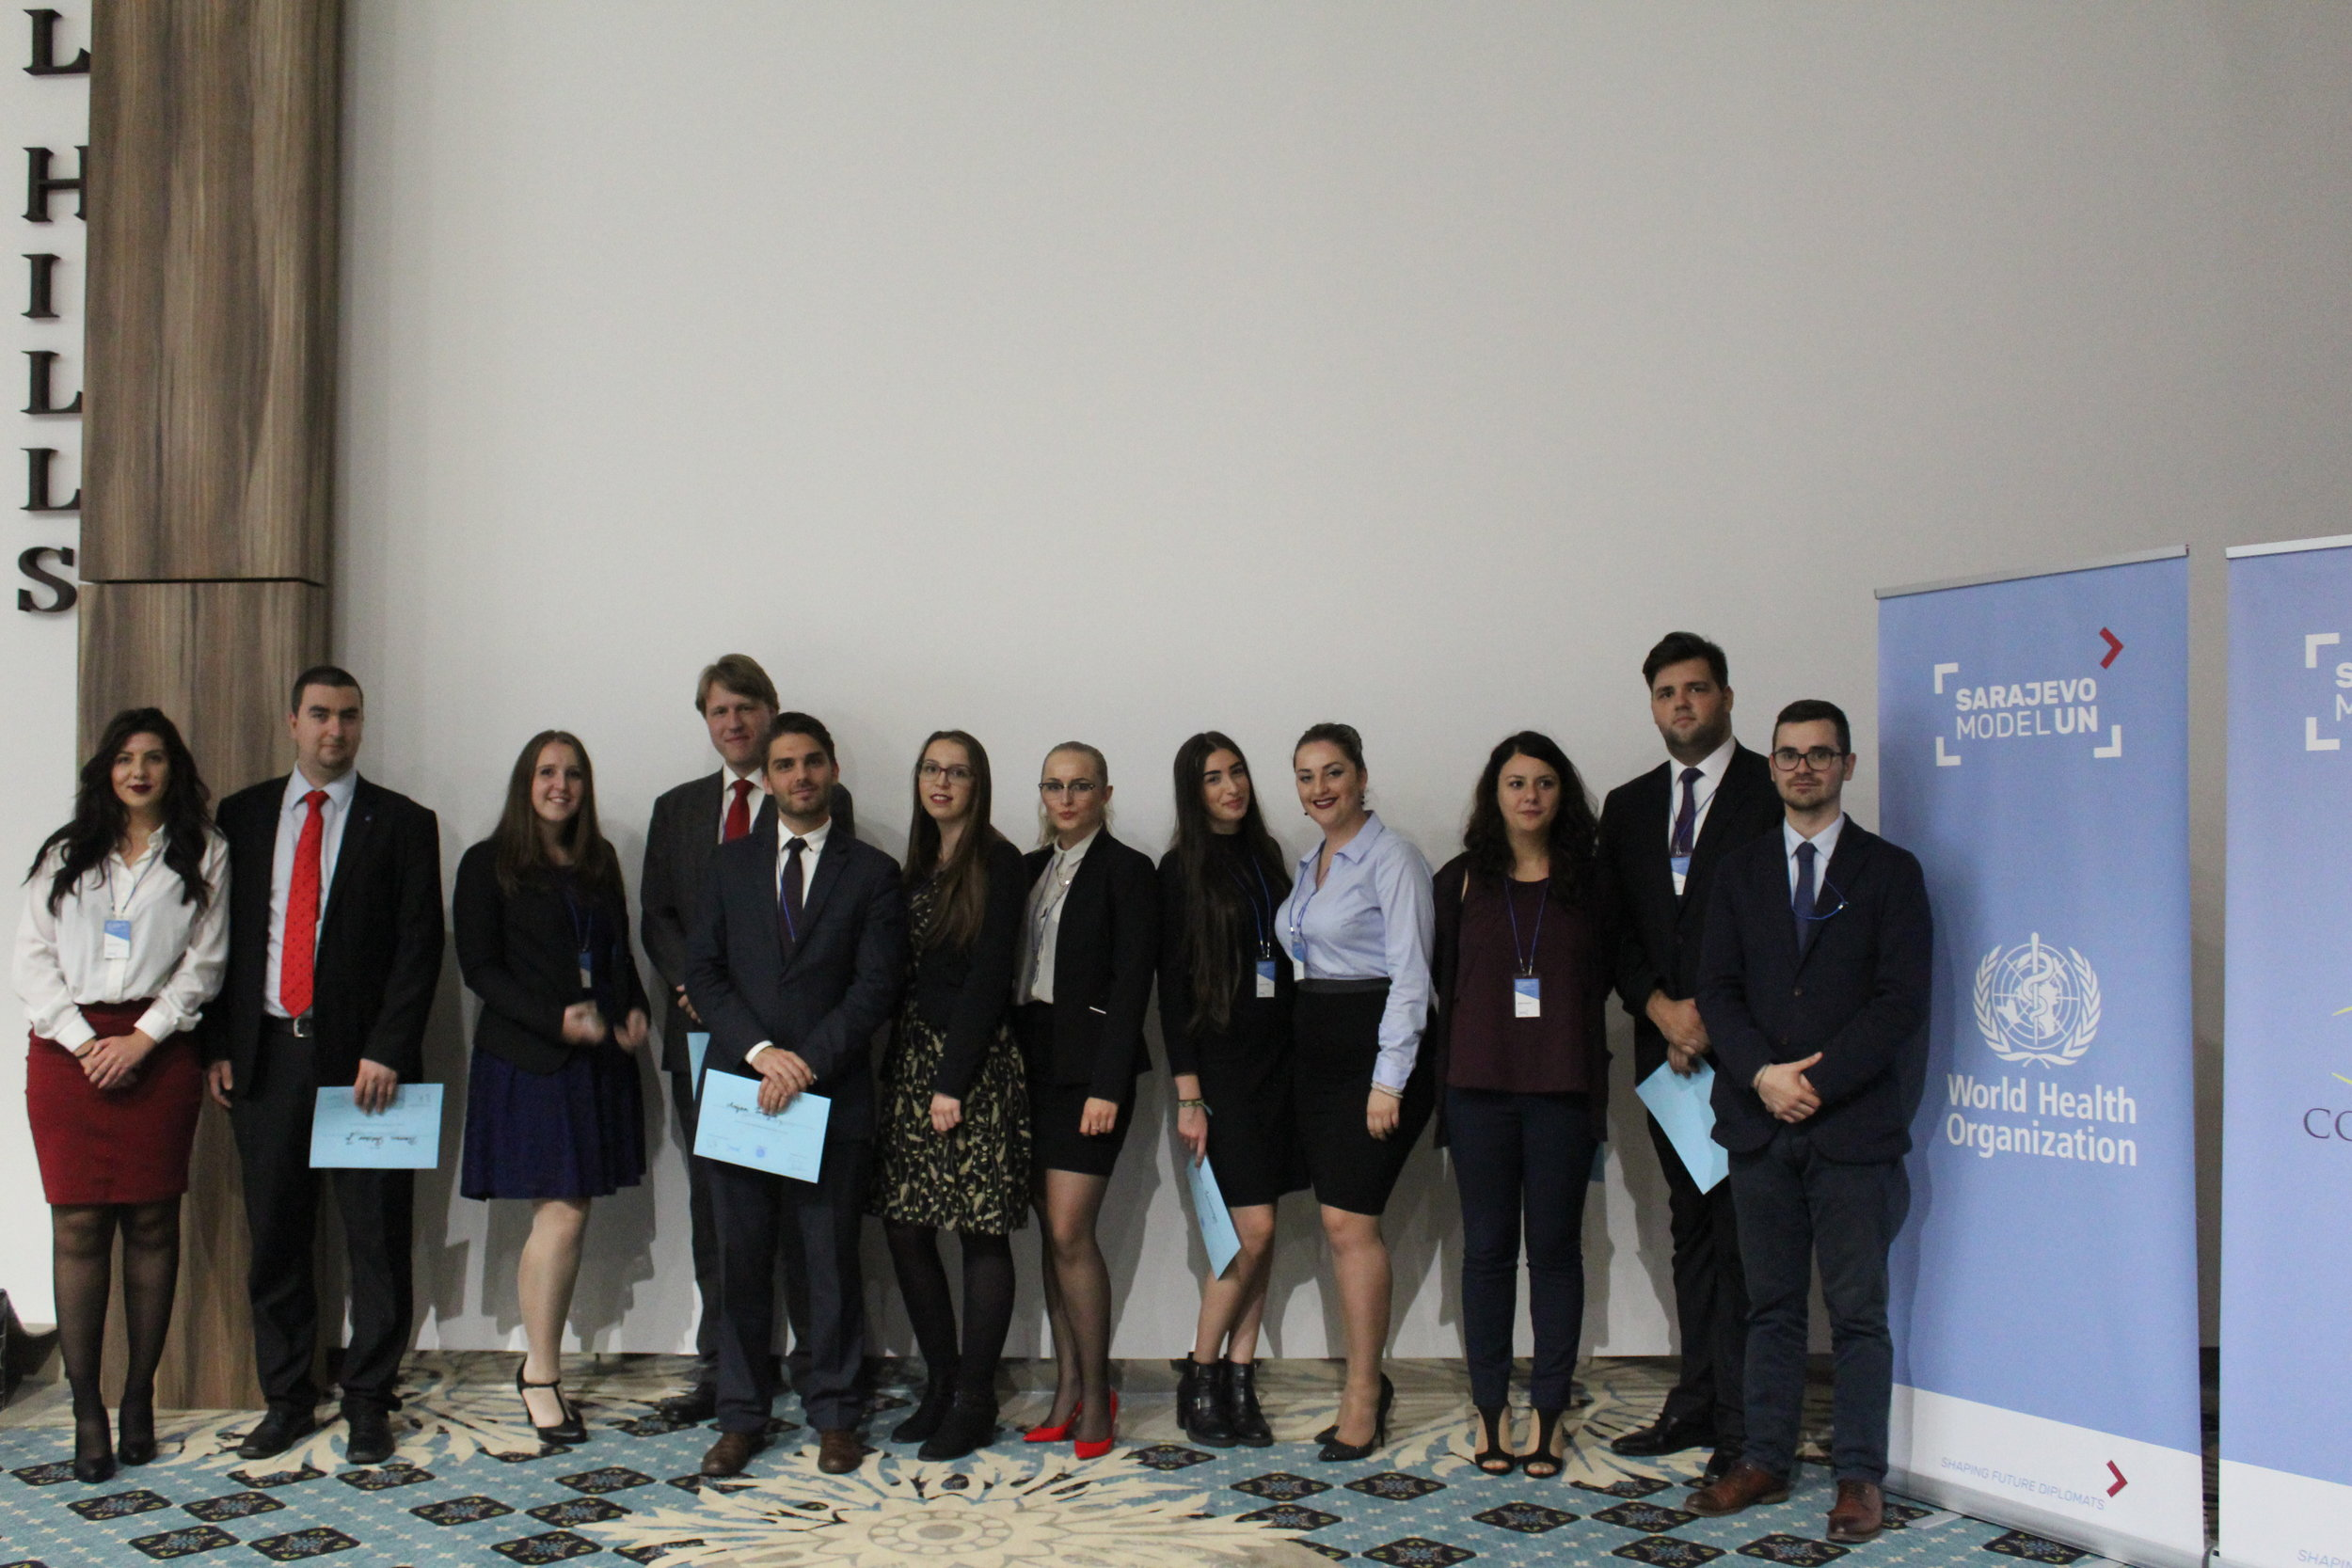 Sarajevo Model UN '16 - Organizers and Chairpersons